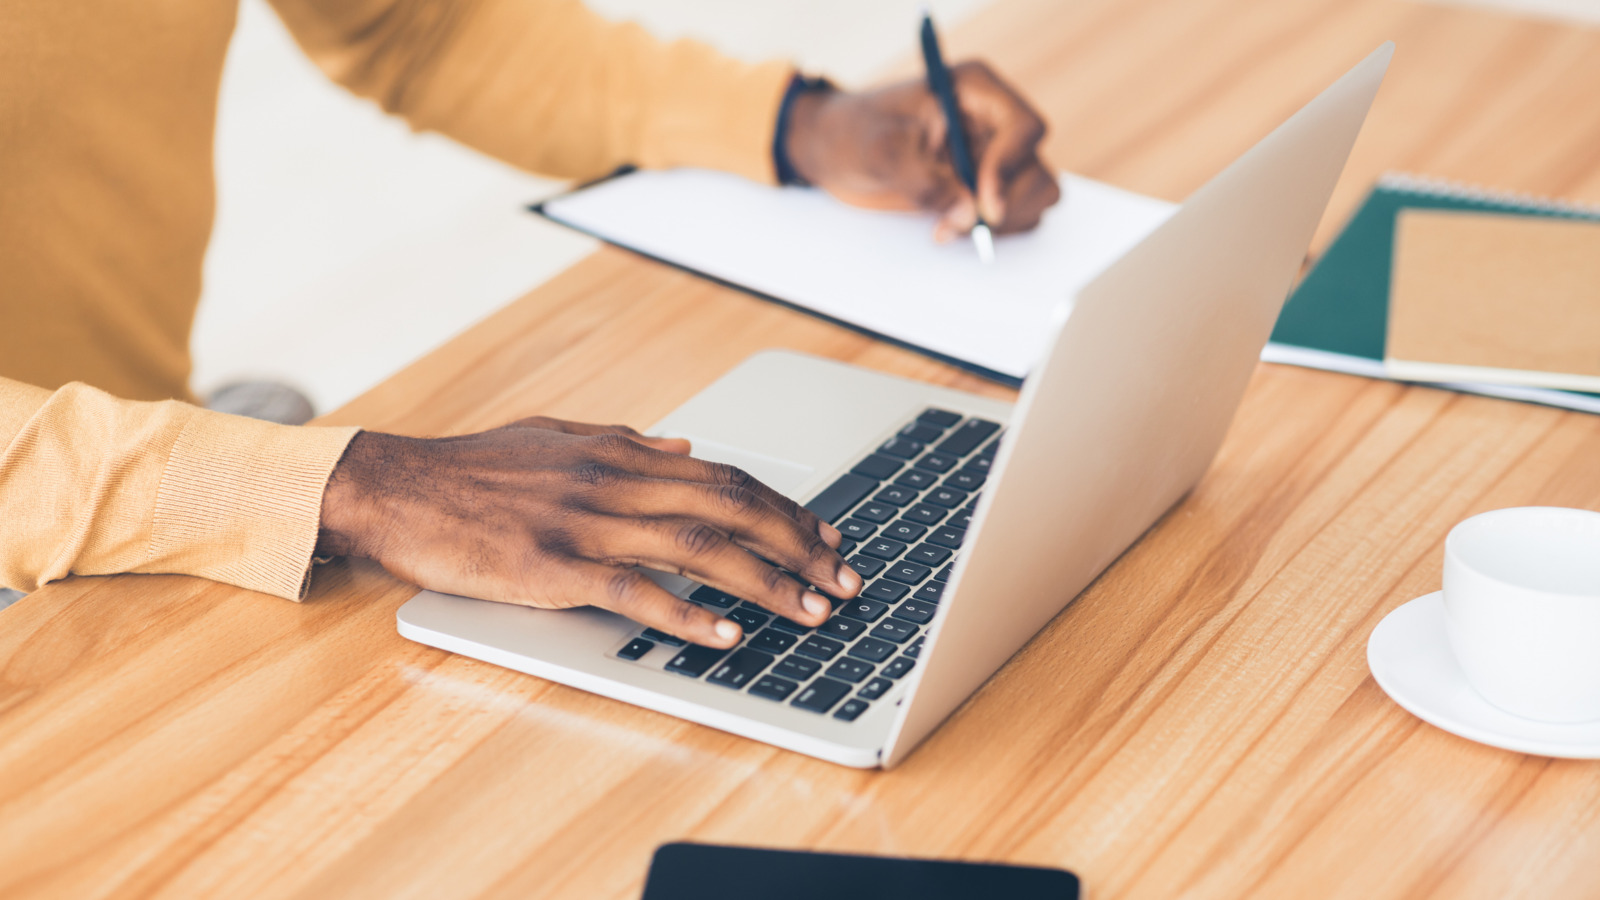 Top 10 Takeaways from the 2019 Talent Acquisition Technology Buyer's Guide